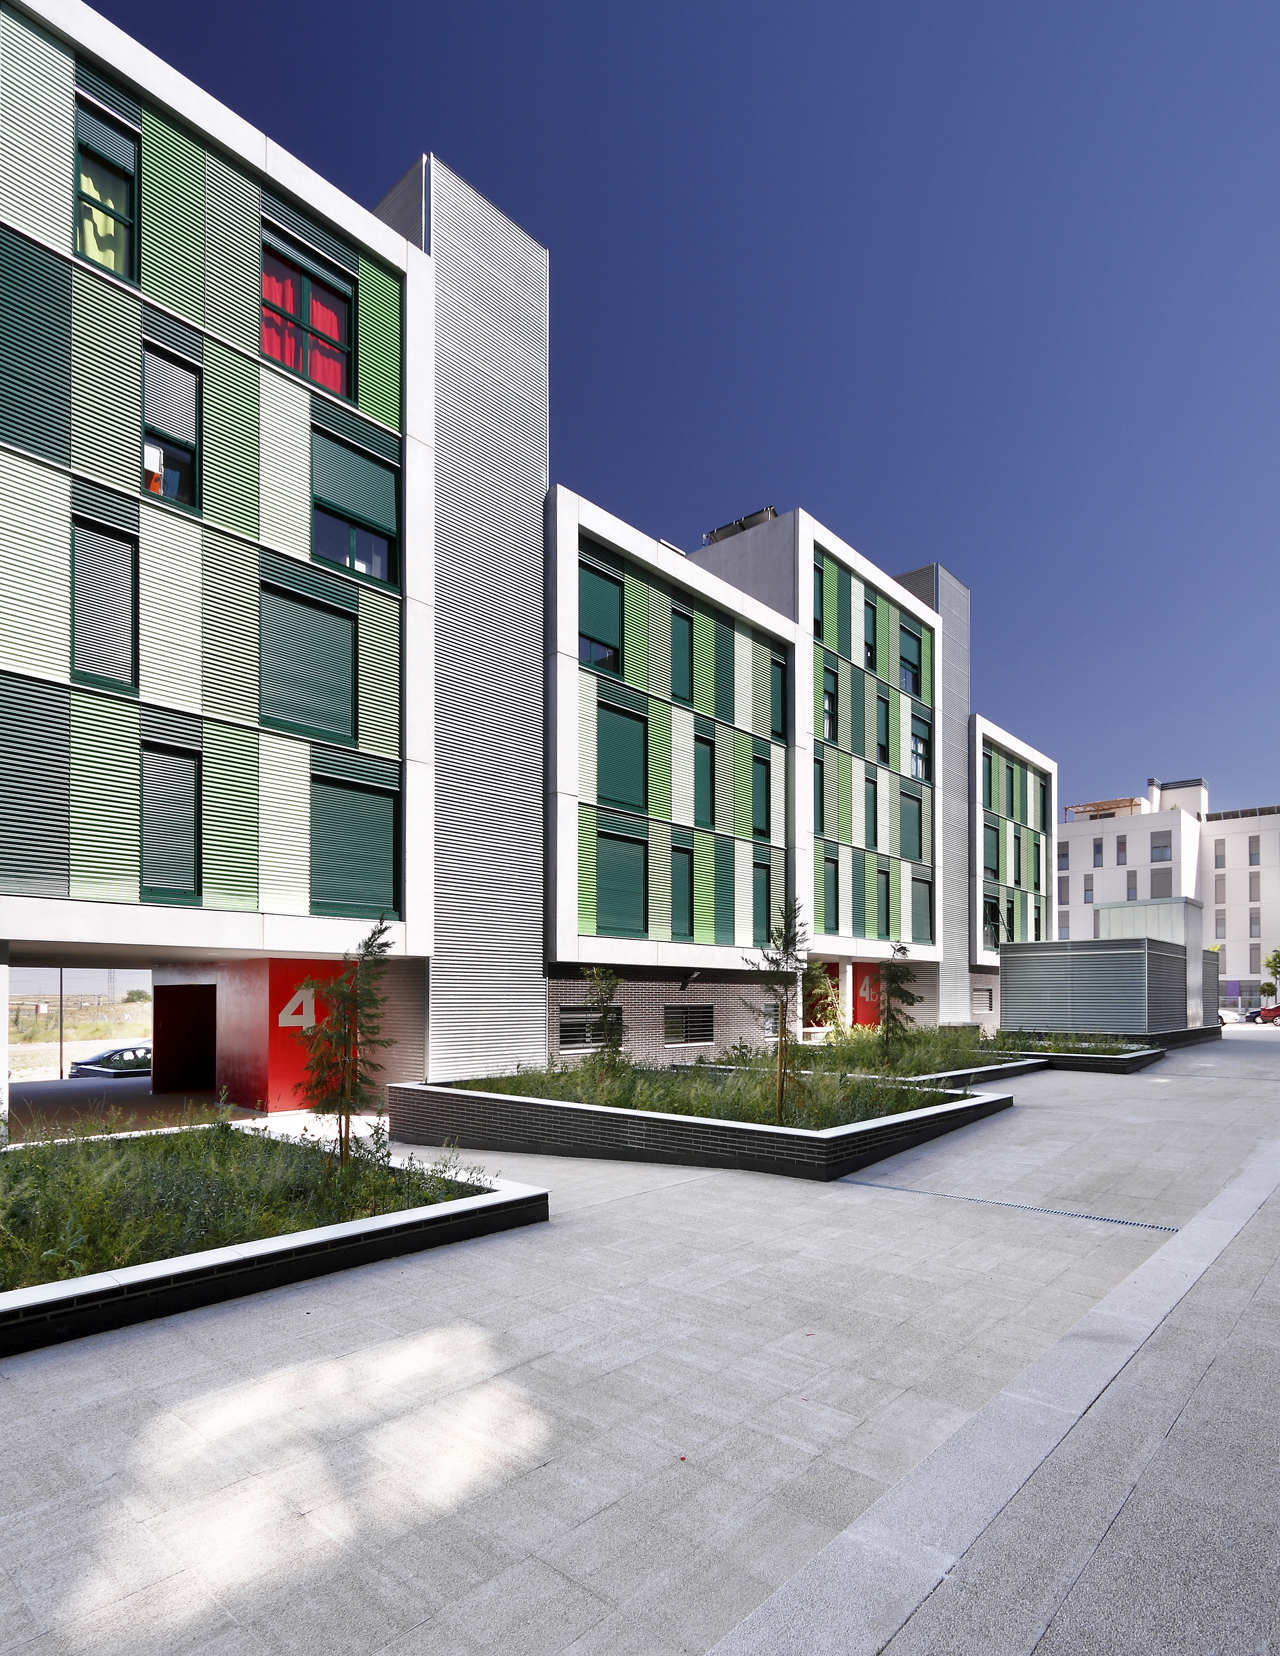 Gallery of 120 social housing in parla arquitecnica 6 for Best housing projects